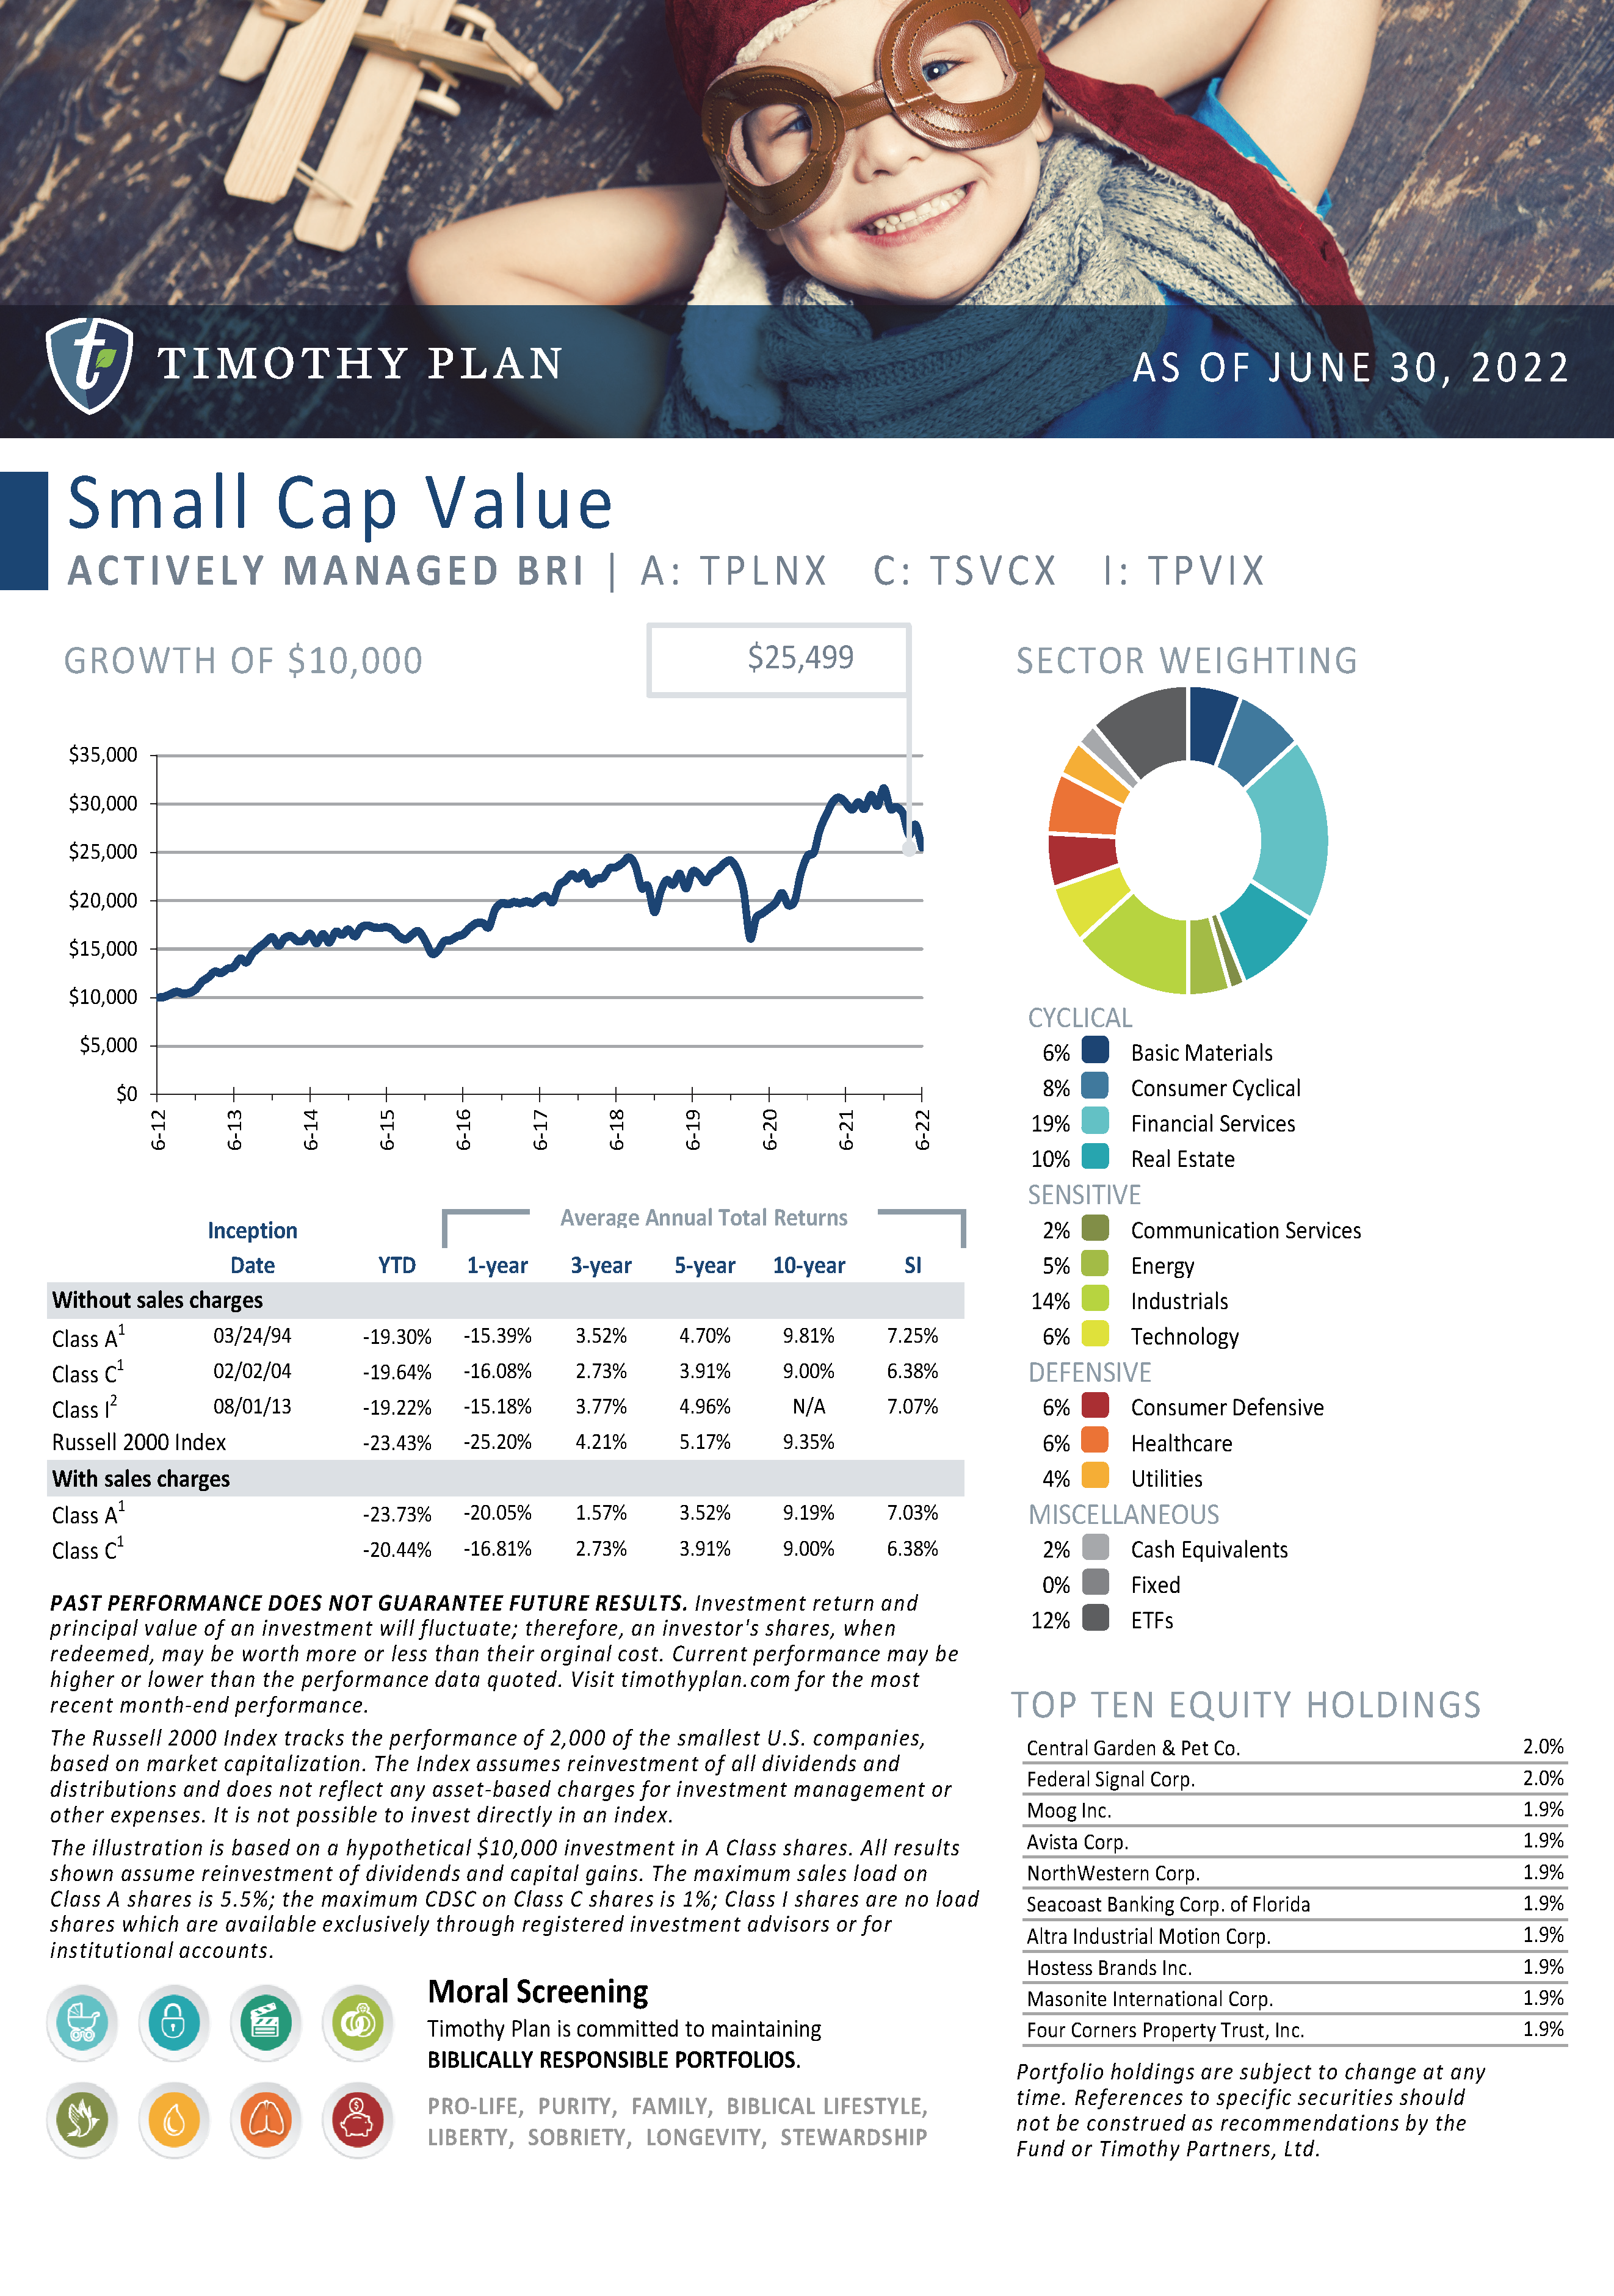 Small Cap Value page 1